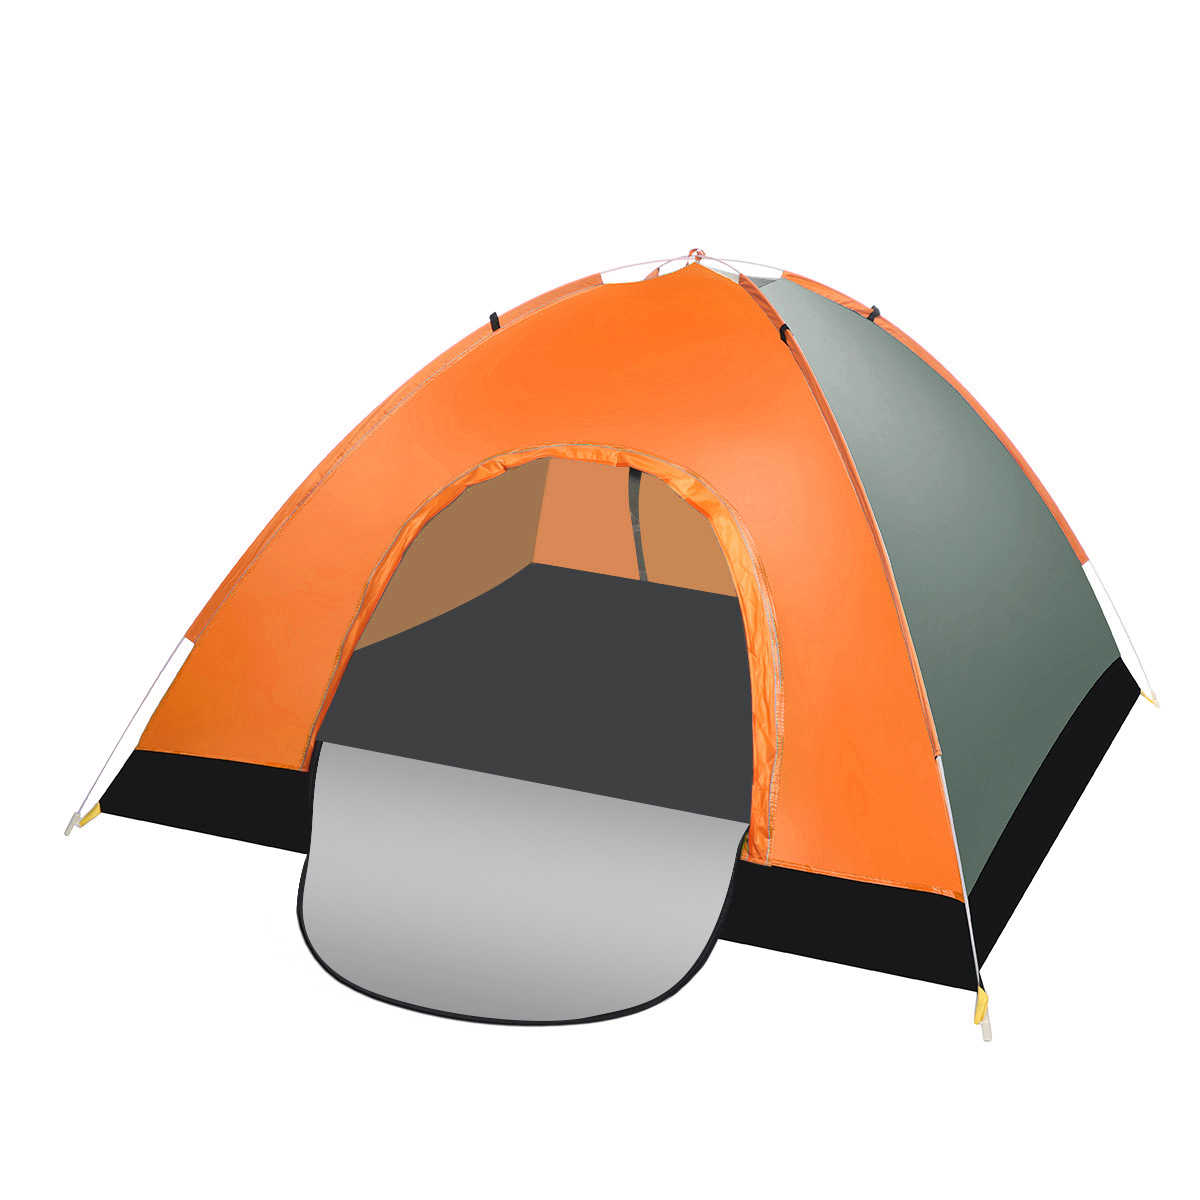 Ipree® 3-4 Person Double Door Automatic Instant Camping Tent Double Layer Waterproof Tent for Hiking Travelling